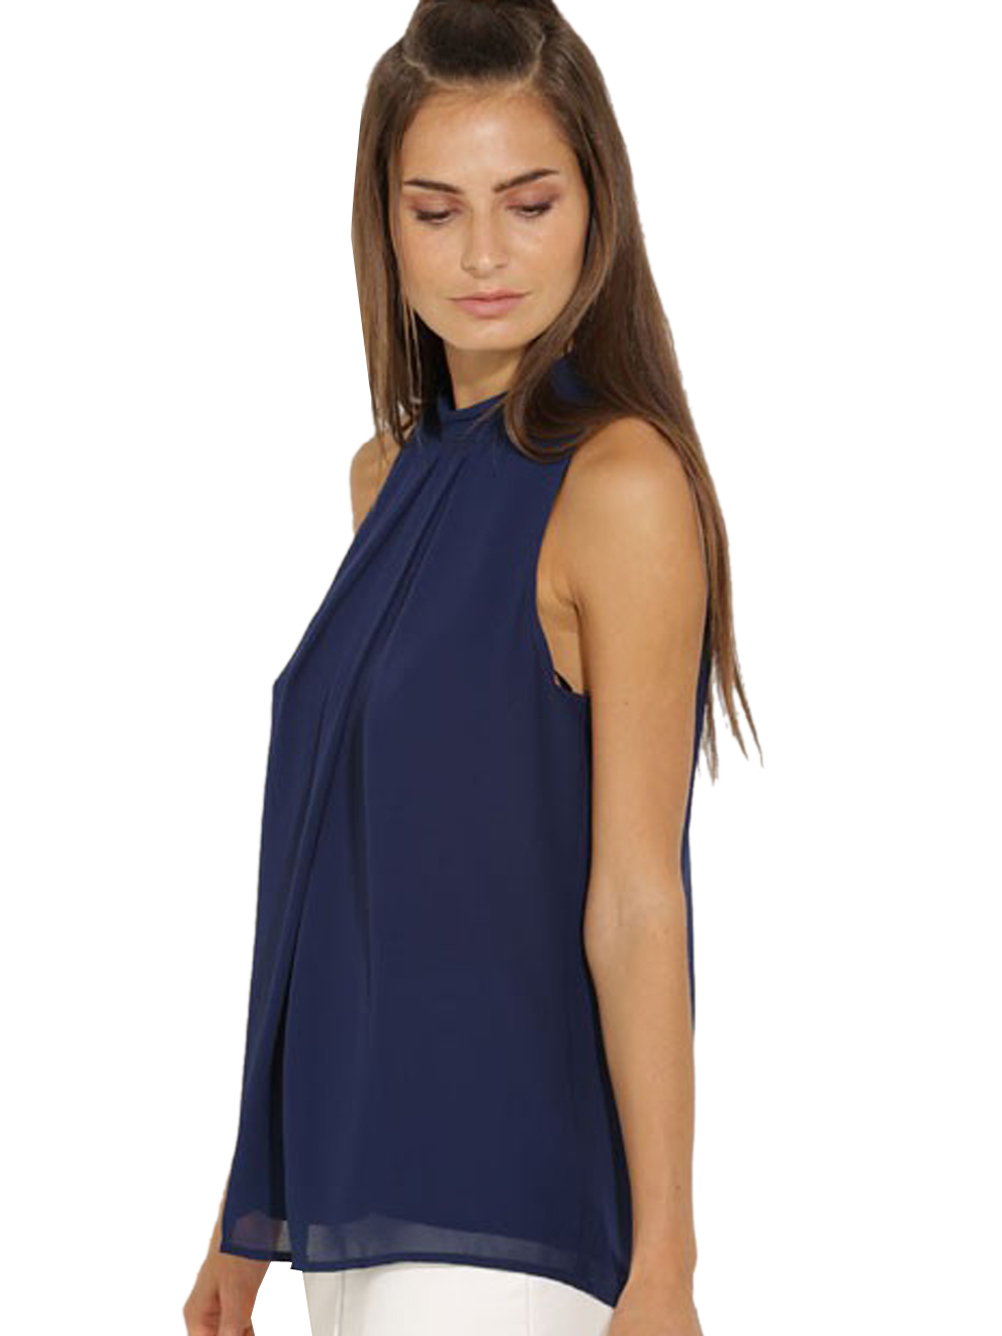 Compare Prices on Navy Blue Womens Shirts- Online Shopping/Buy Low ...